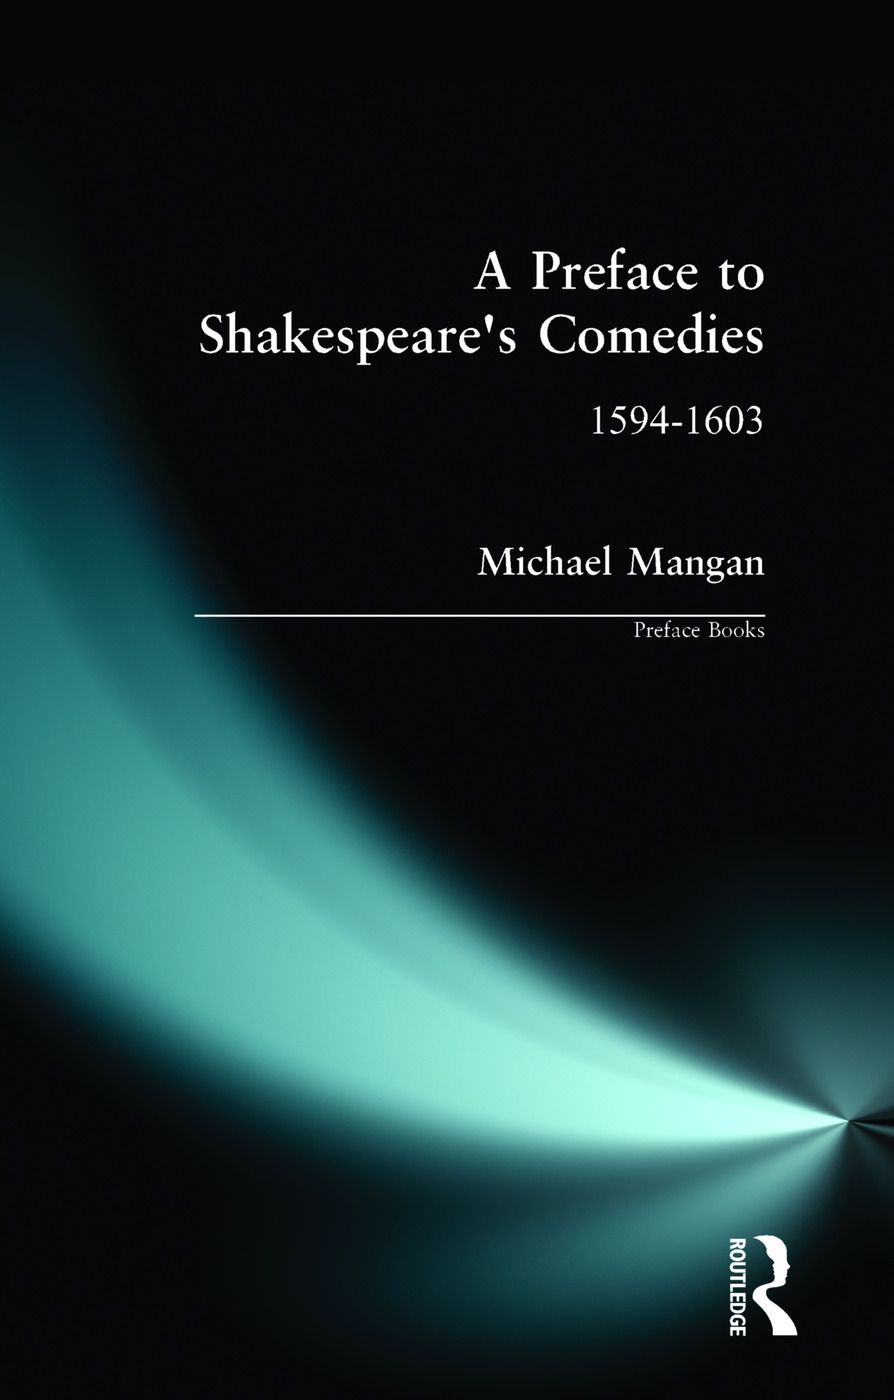 A Preface to Shakespeare's Comedies